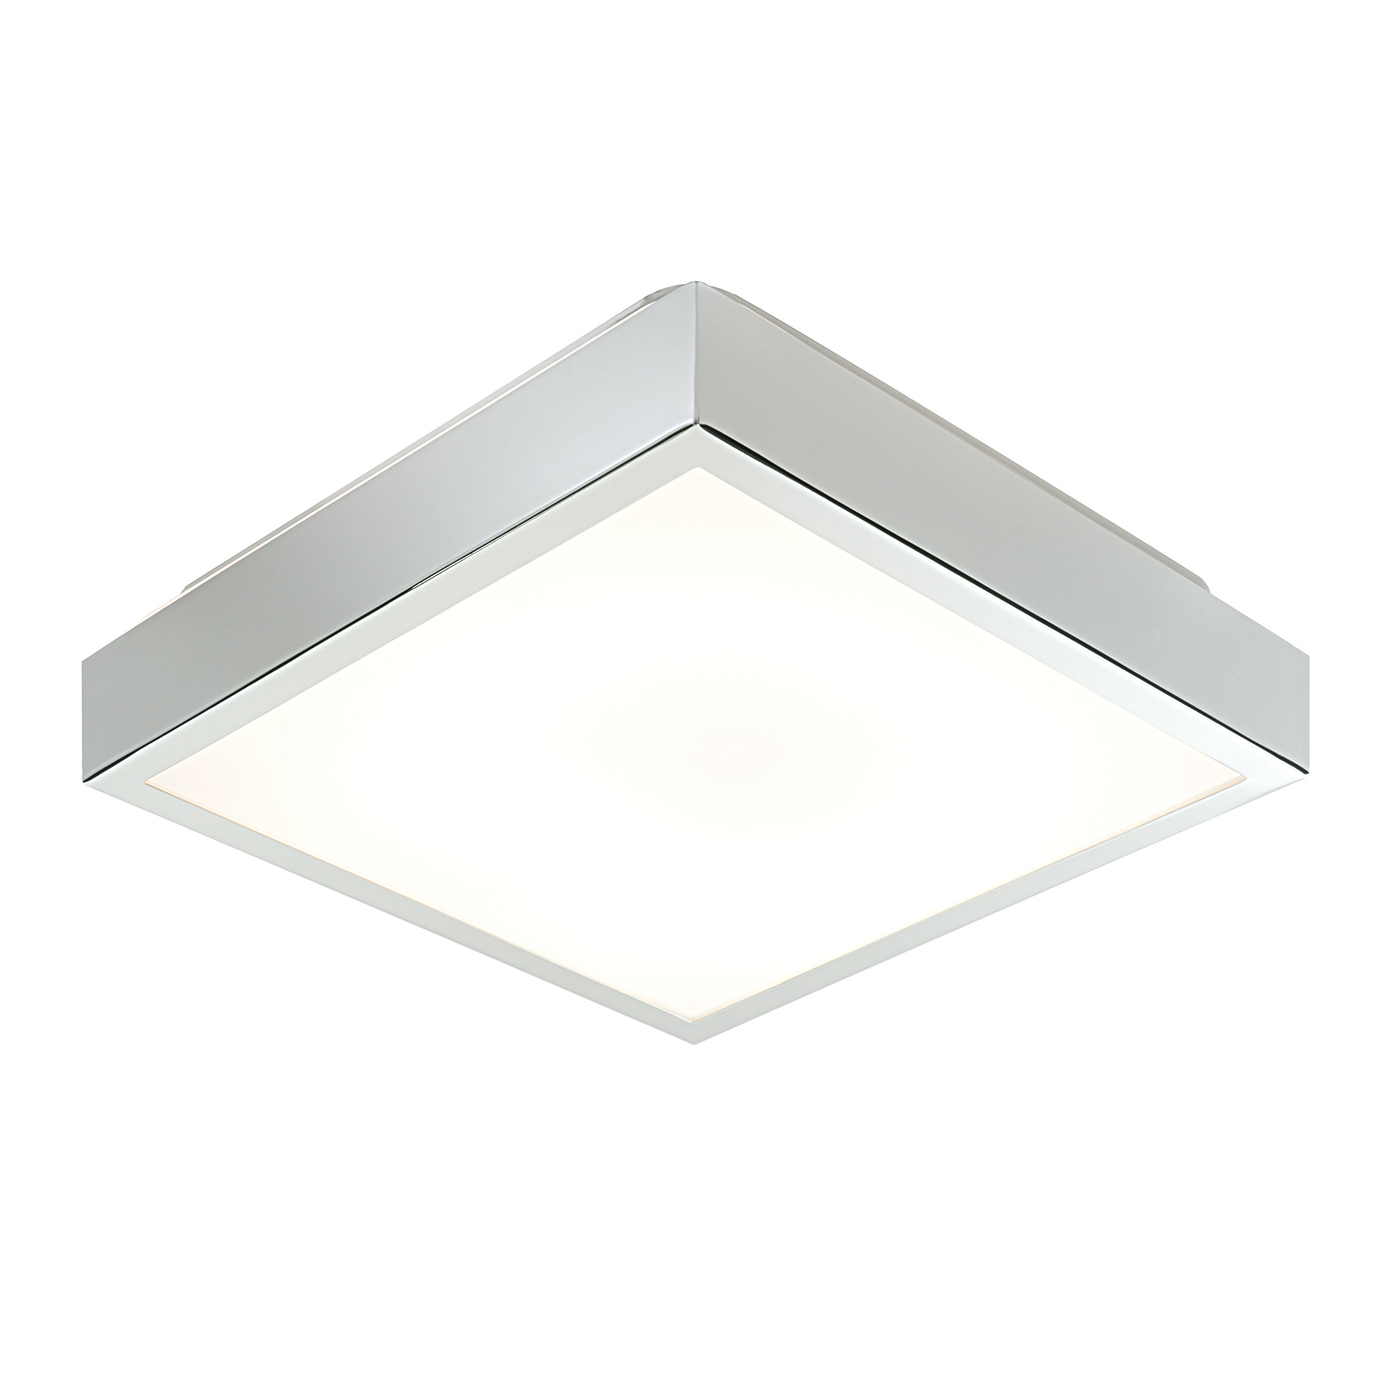 Endon Cubita 290mm square bathroom ceiling light HF IP44 28W chrome & acrylic Thumbnail 1